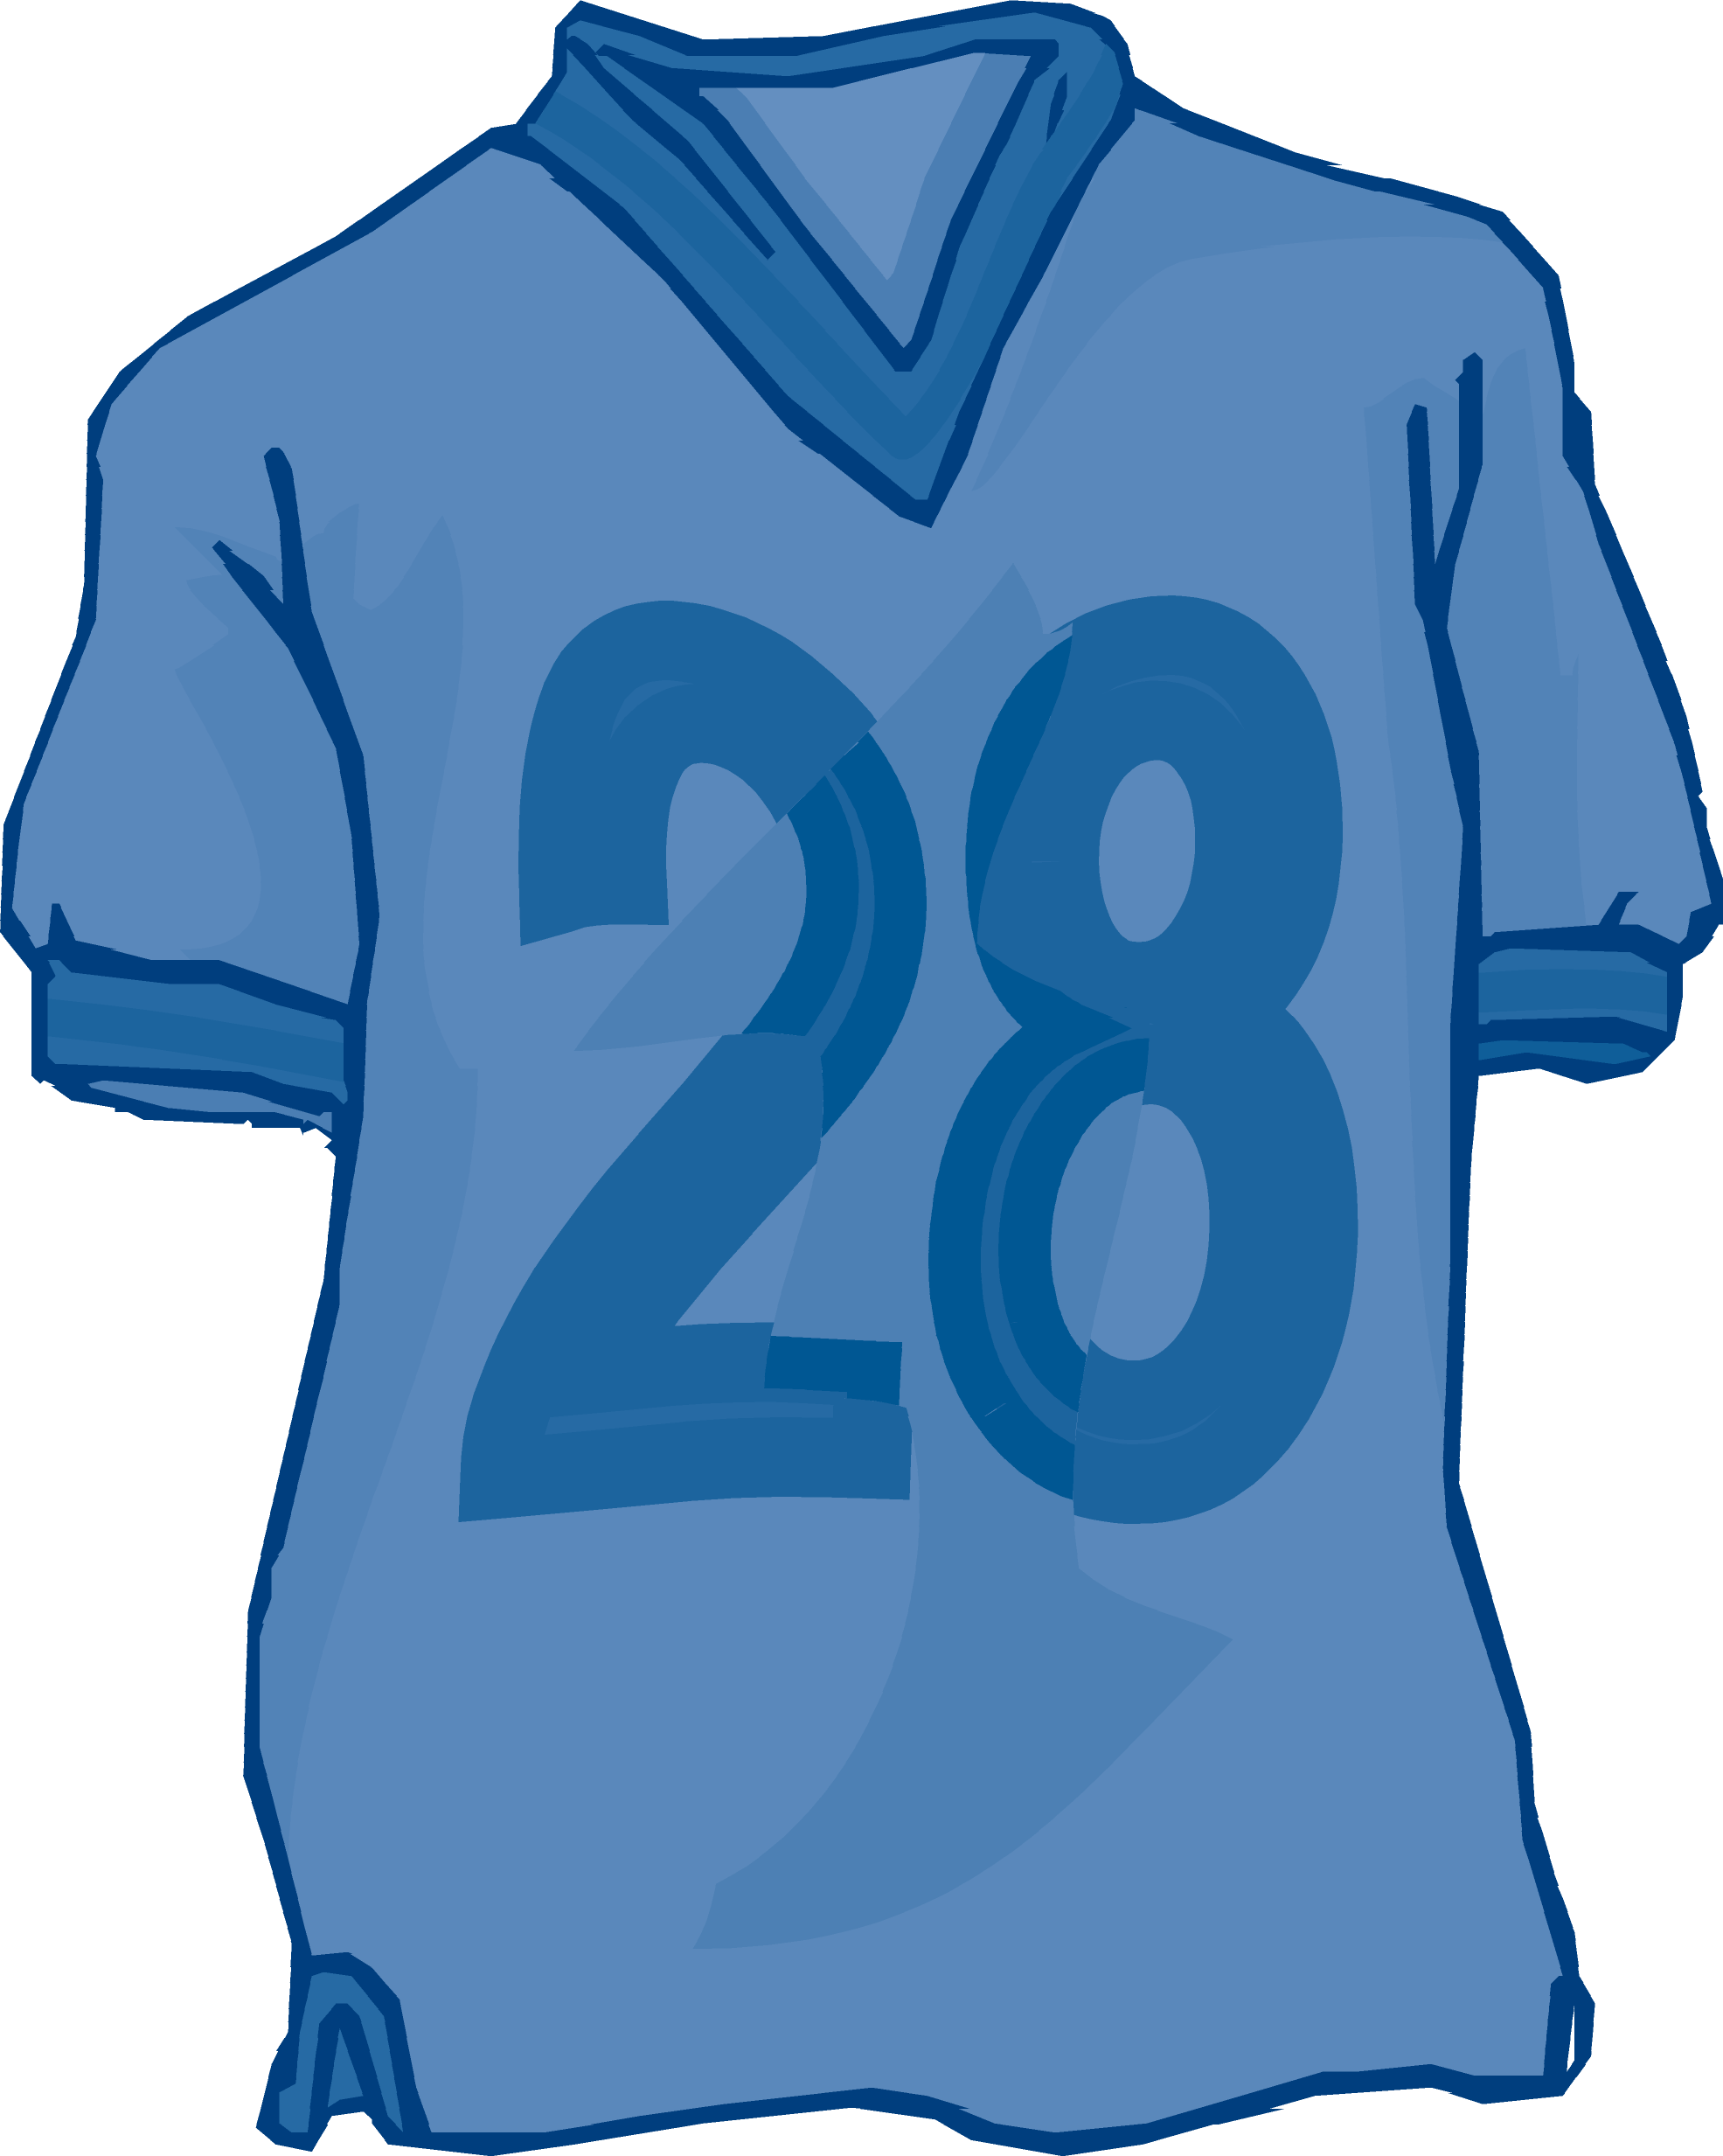 Clipart Football Jersey - ClipartDeck